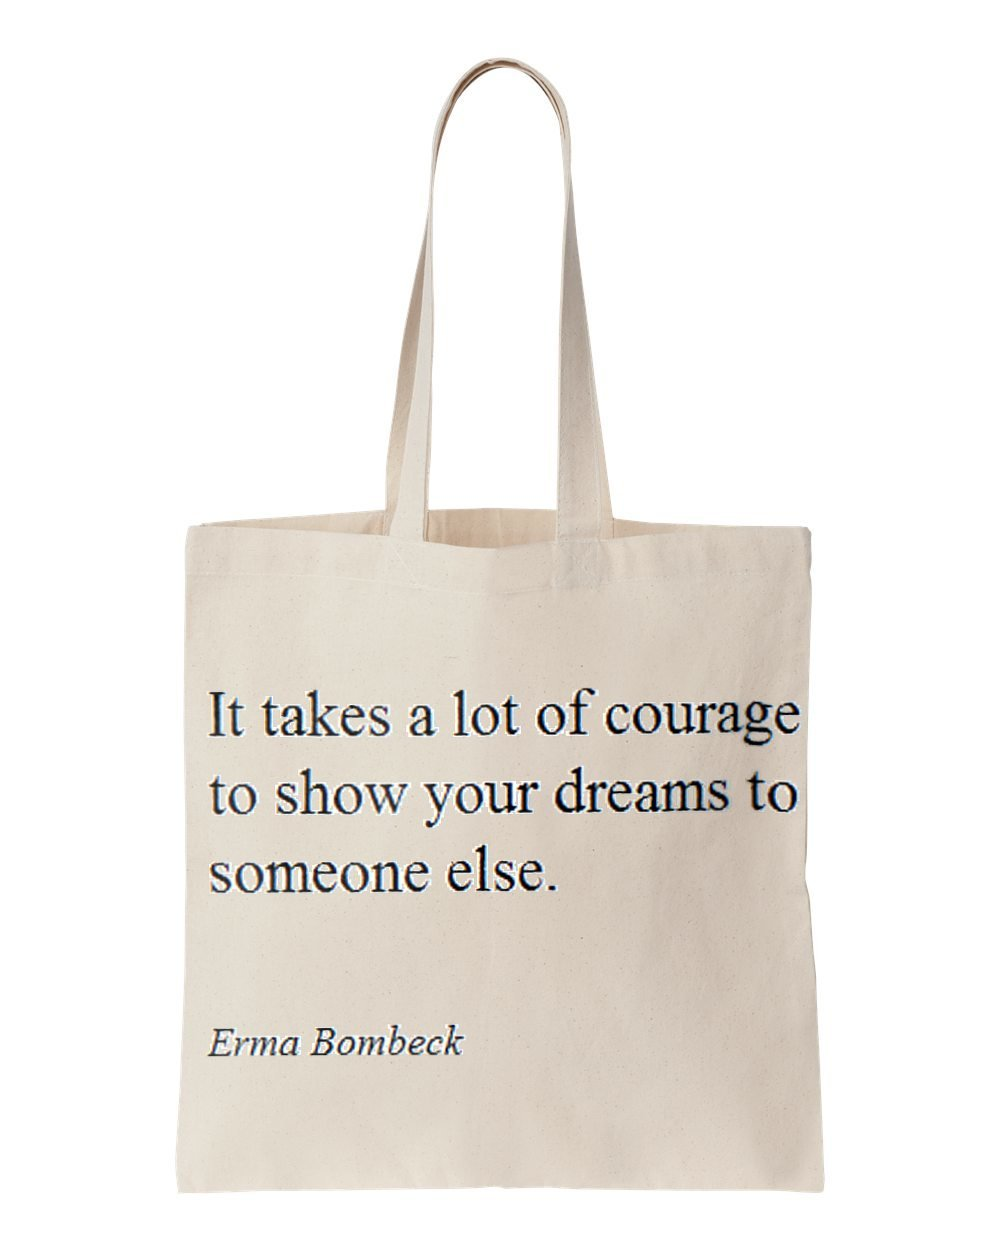 Erma Bombeck ES erfordert Viel Mut to show your dreams to Someone ...